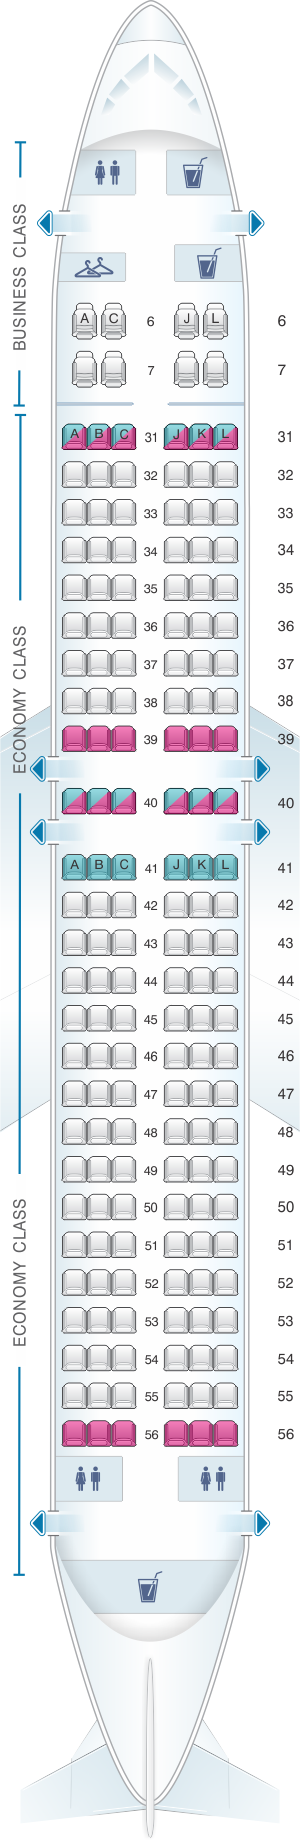 Seat map for China Eastern Airlines Boeing B737 800 164PAX